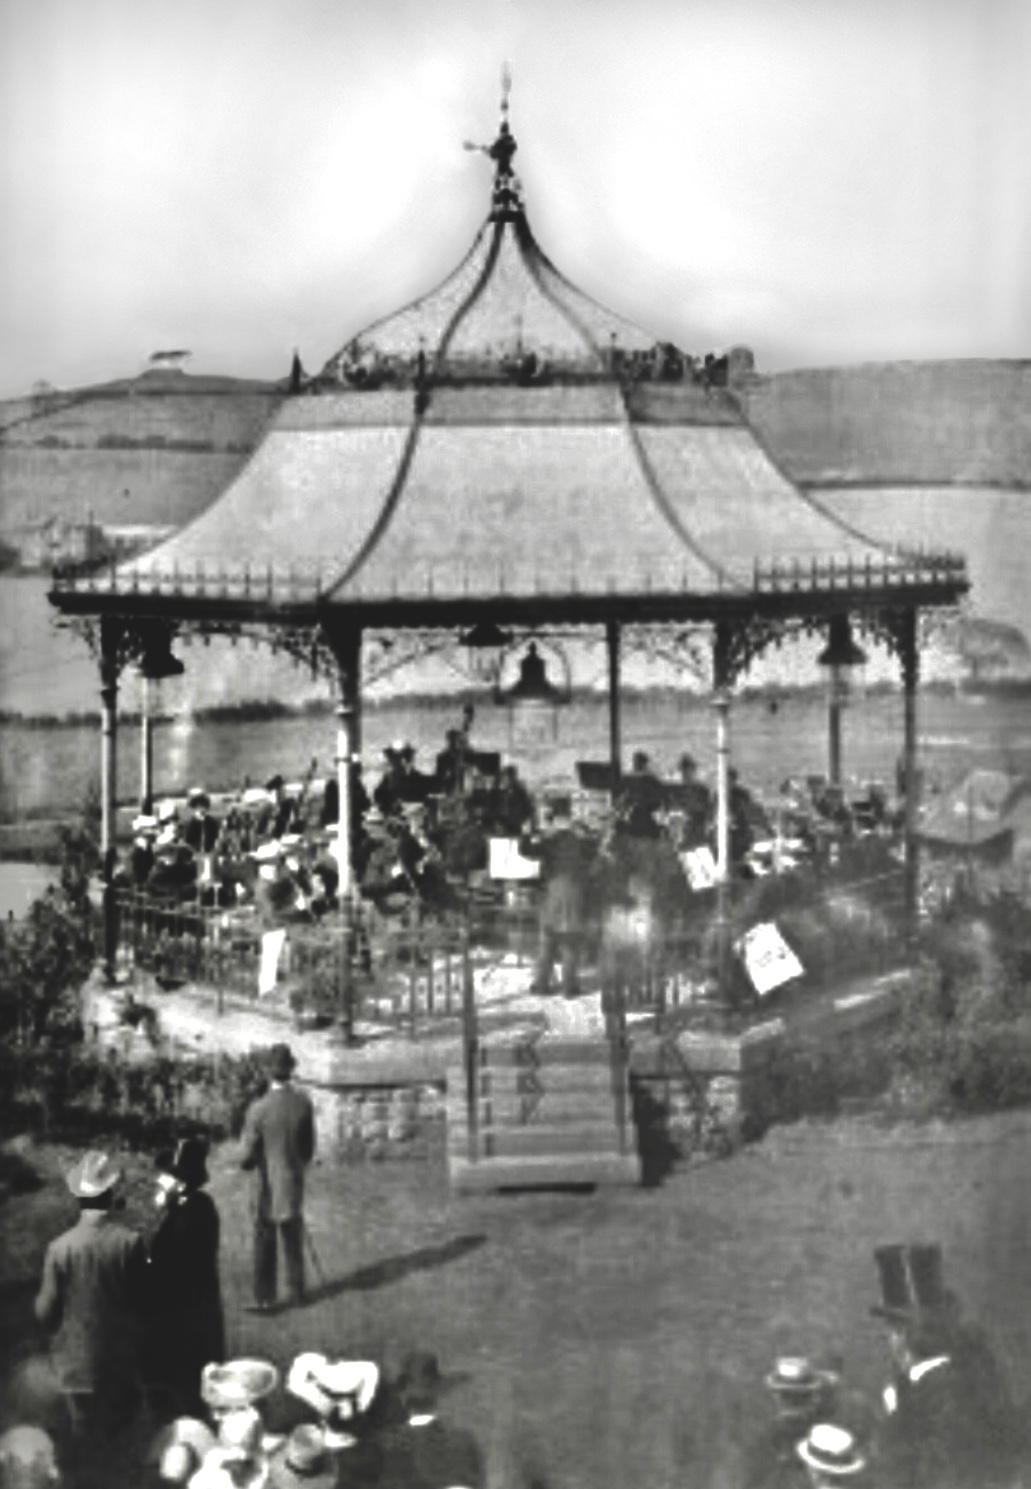 Bandstand, Woodhouse Ridge, early 1900s